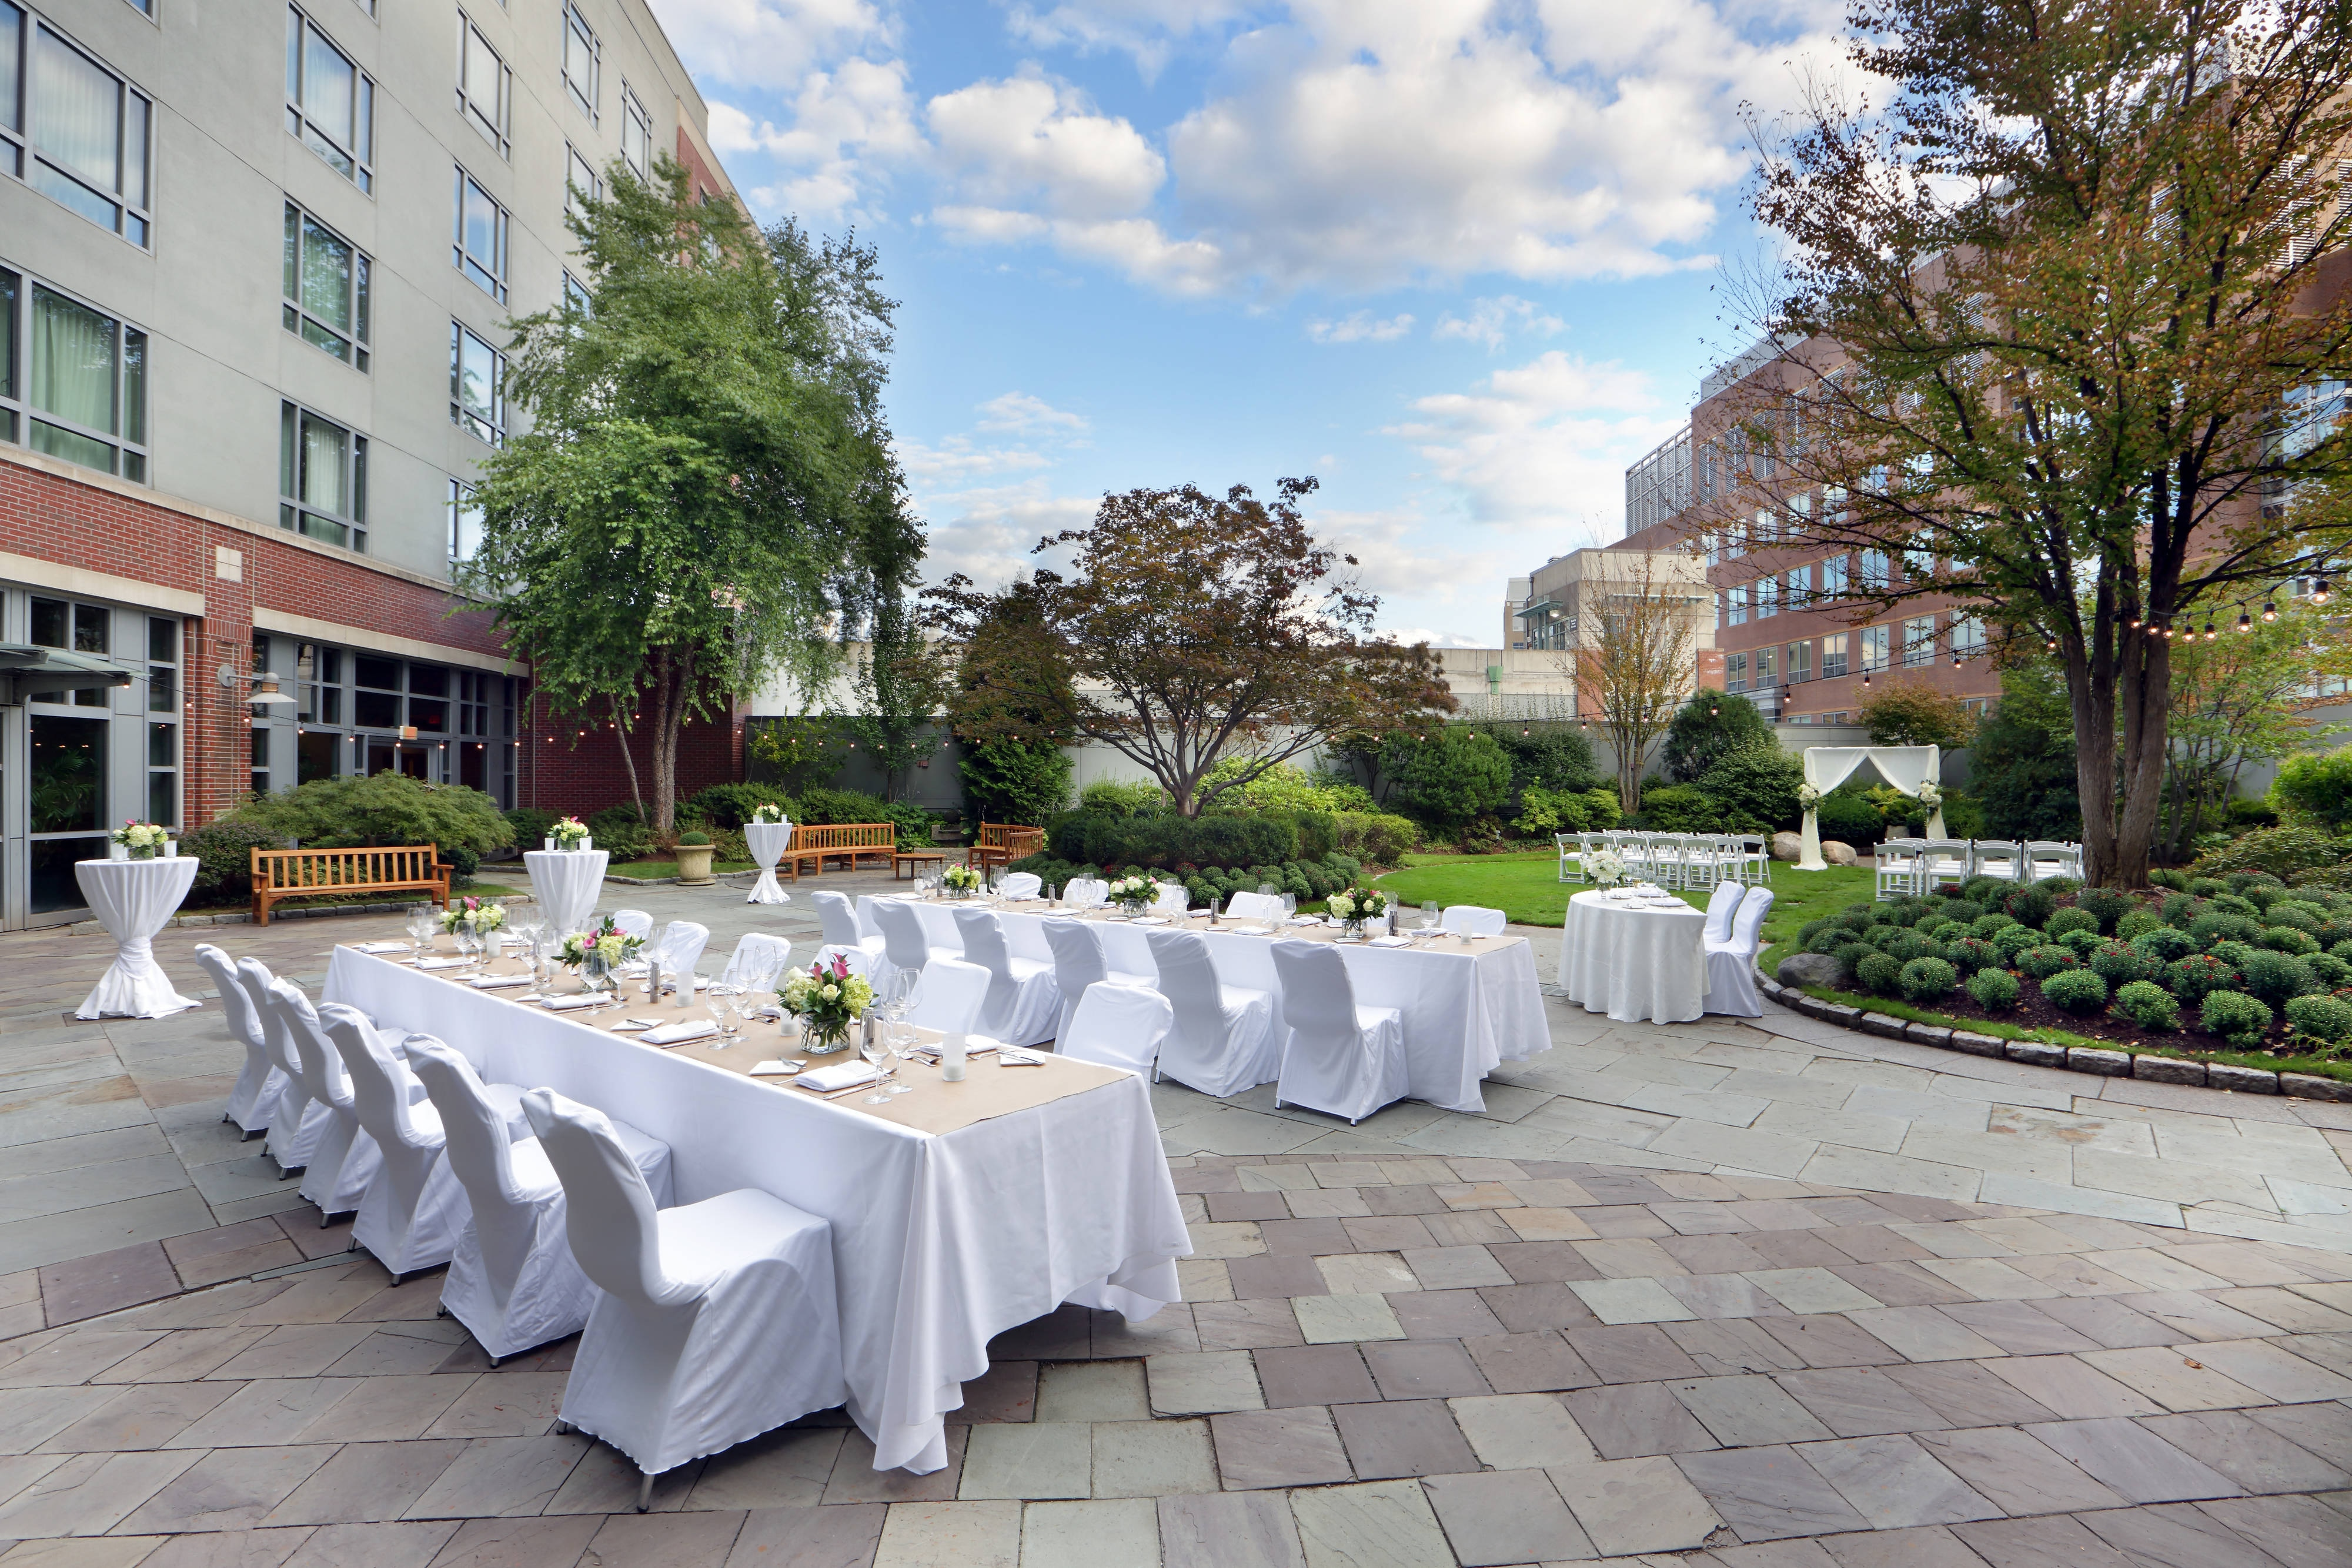 Roof Garden Dinner/Reception